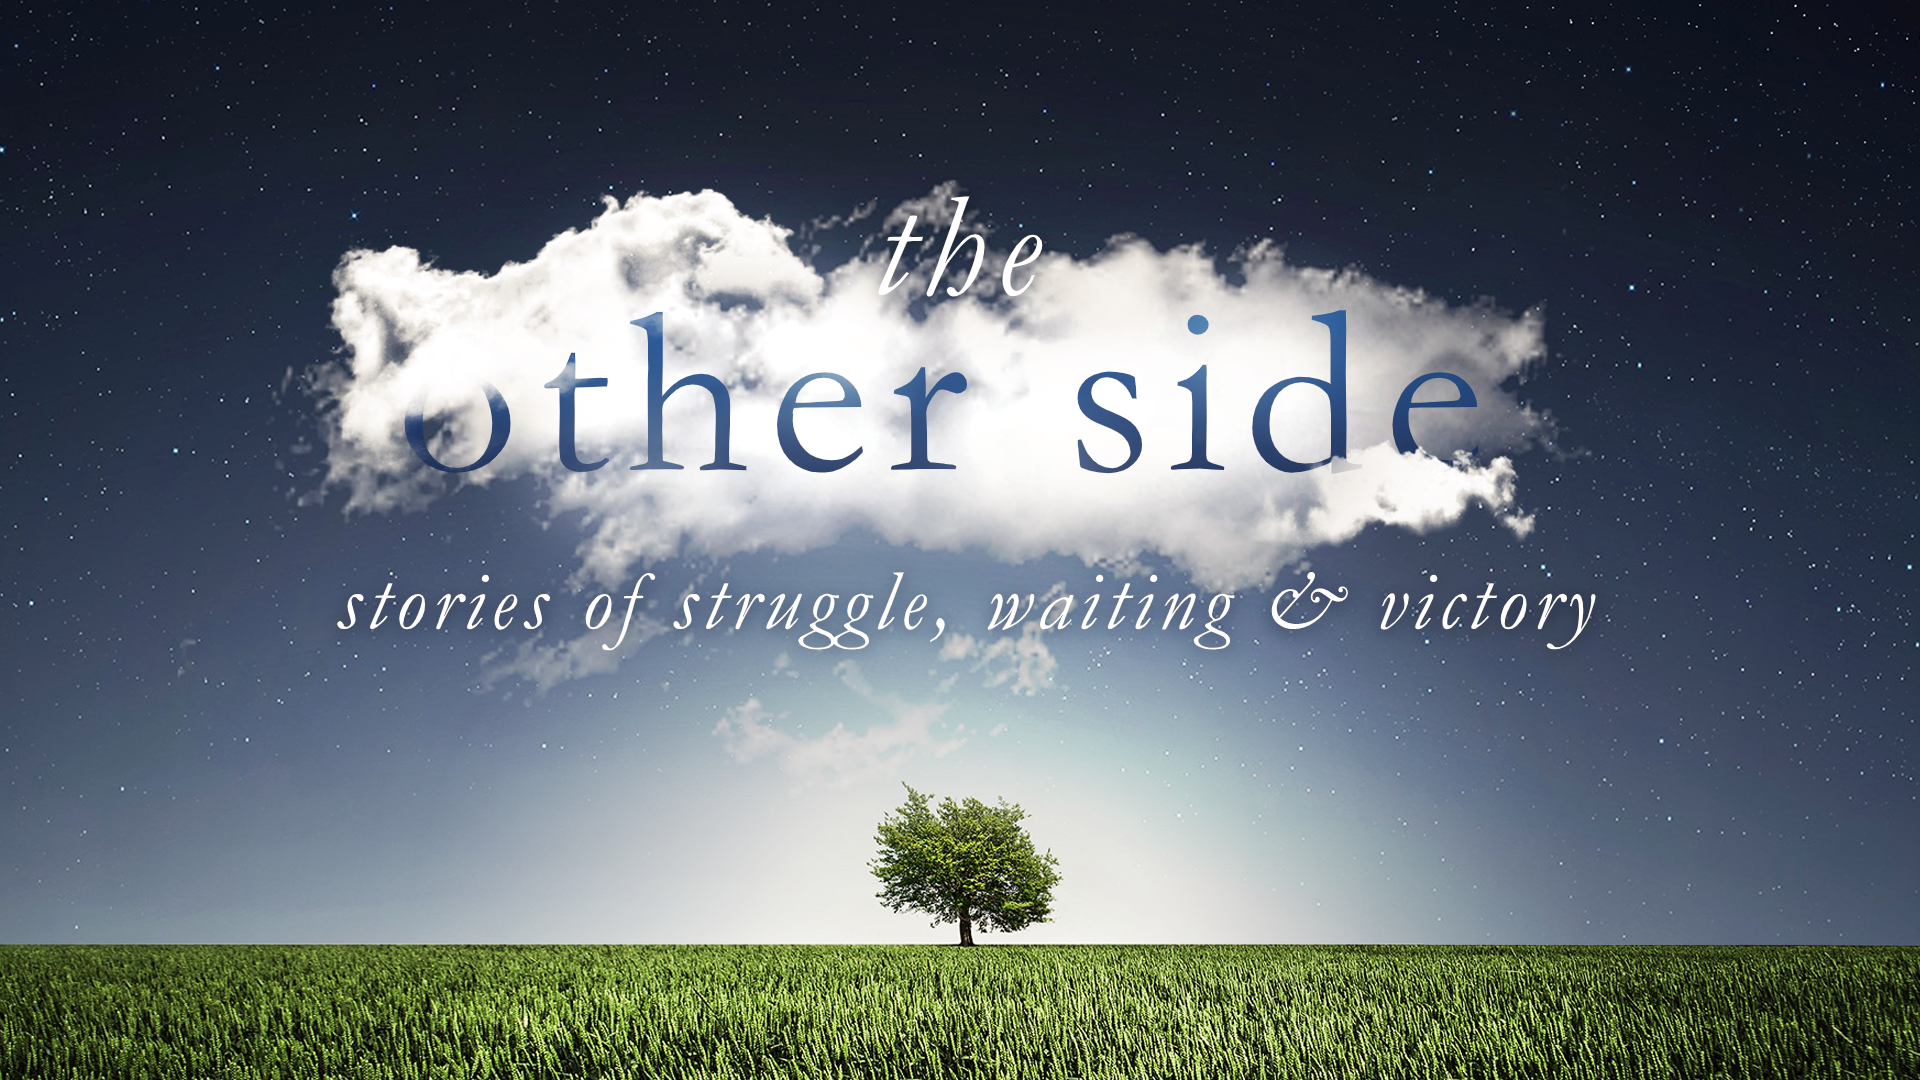 The Other Side - Stories of struggle, waiting and victory.